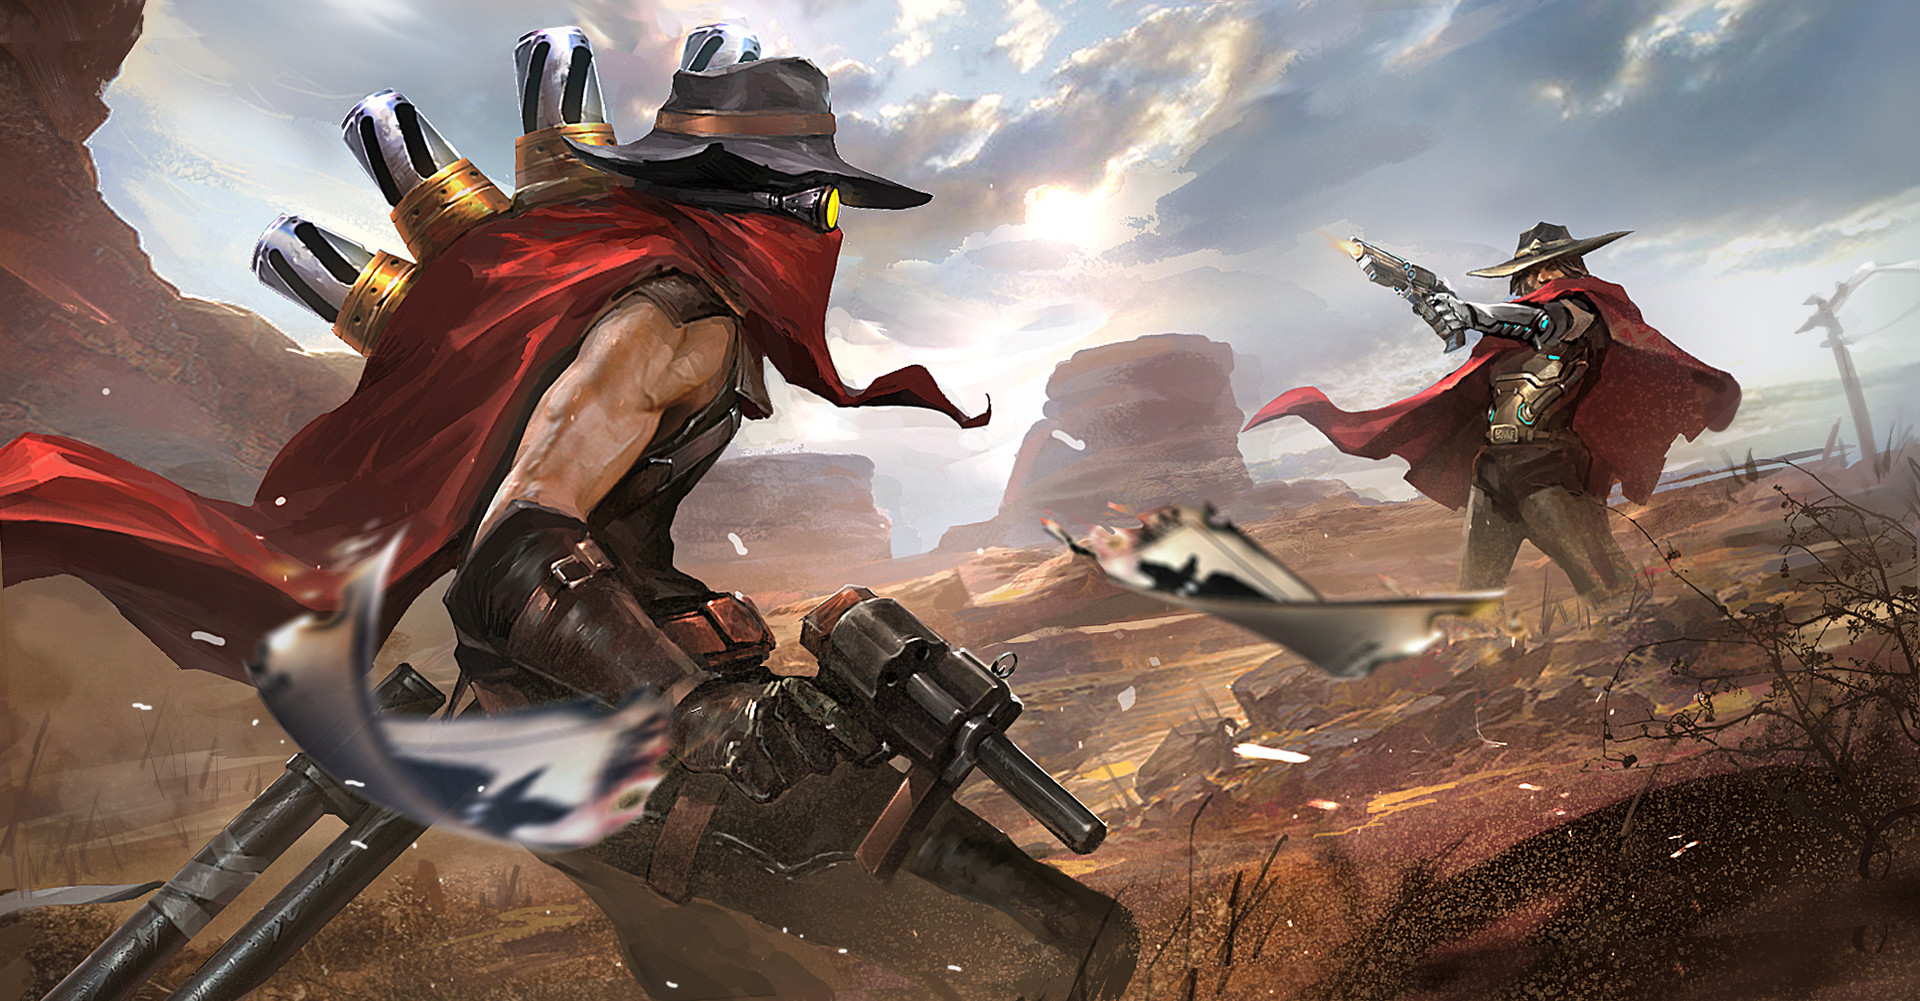 McCree Vs Jhin Wild West